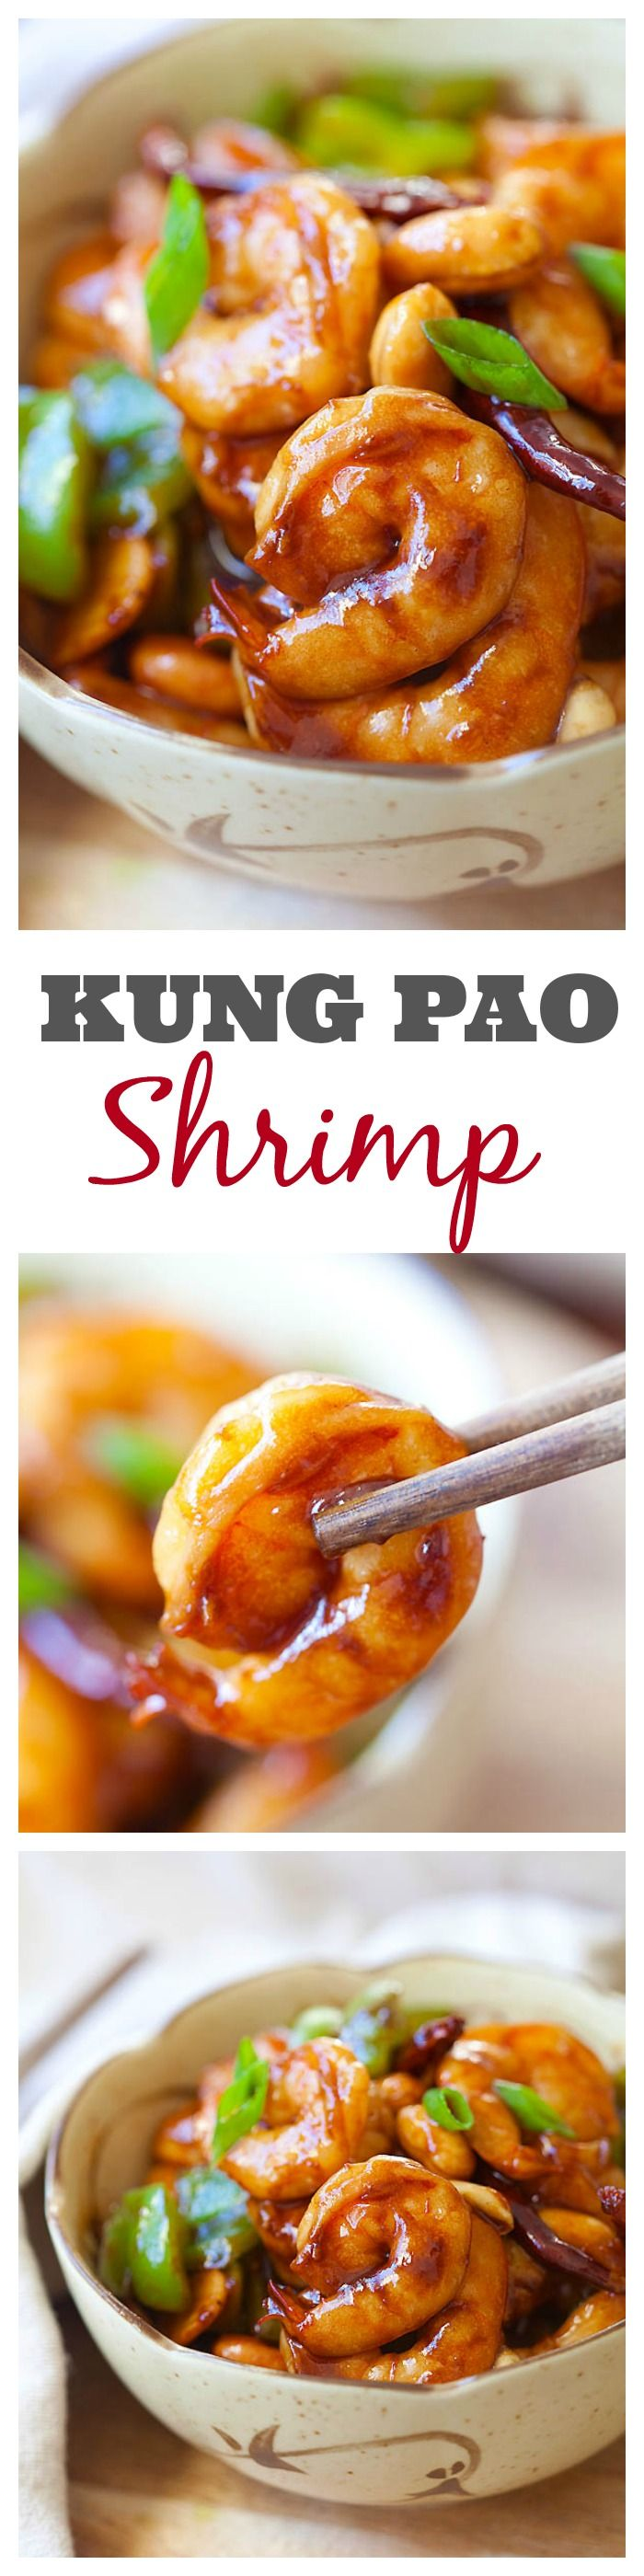 Kung Pao Shrimp recipe that is super easy to make at home in less than 30 minutes but much better and healthier than Kung Pao Shrimp takeout from restaurants | rasamalaysia.com